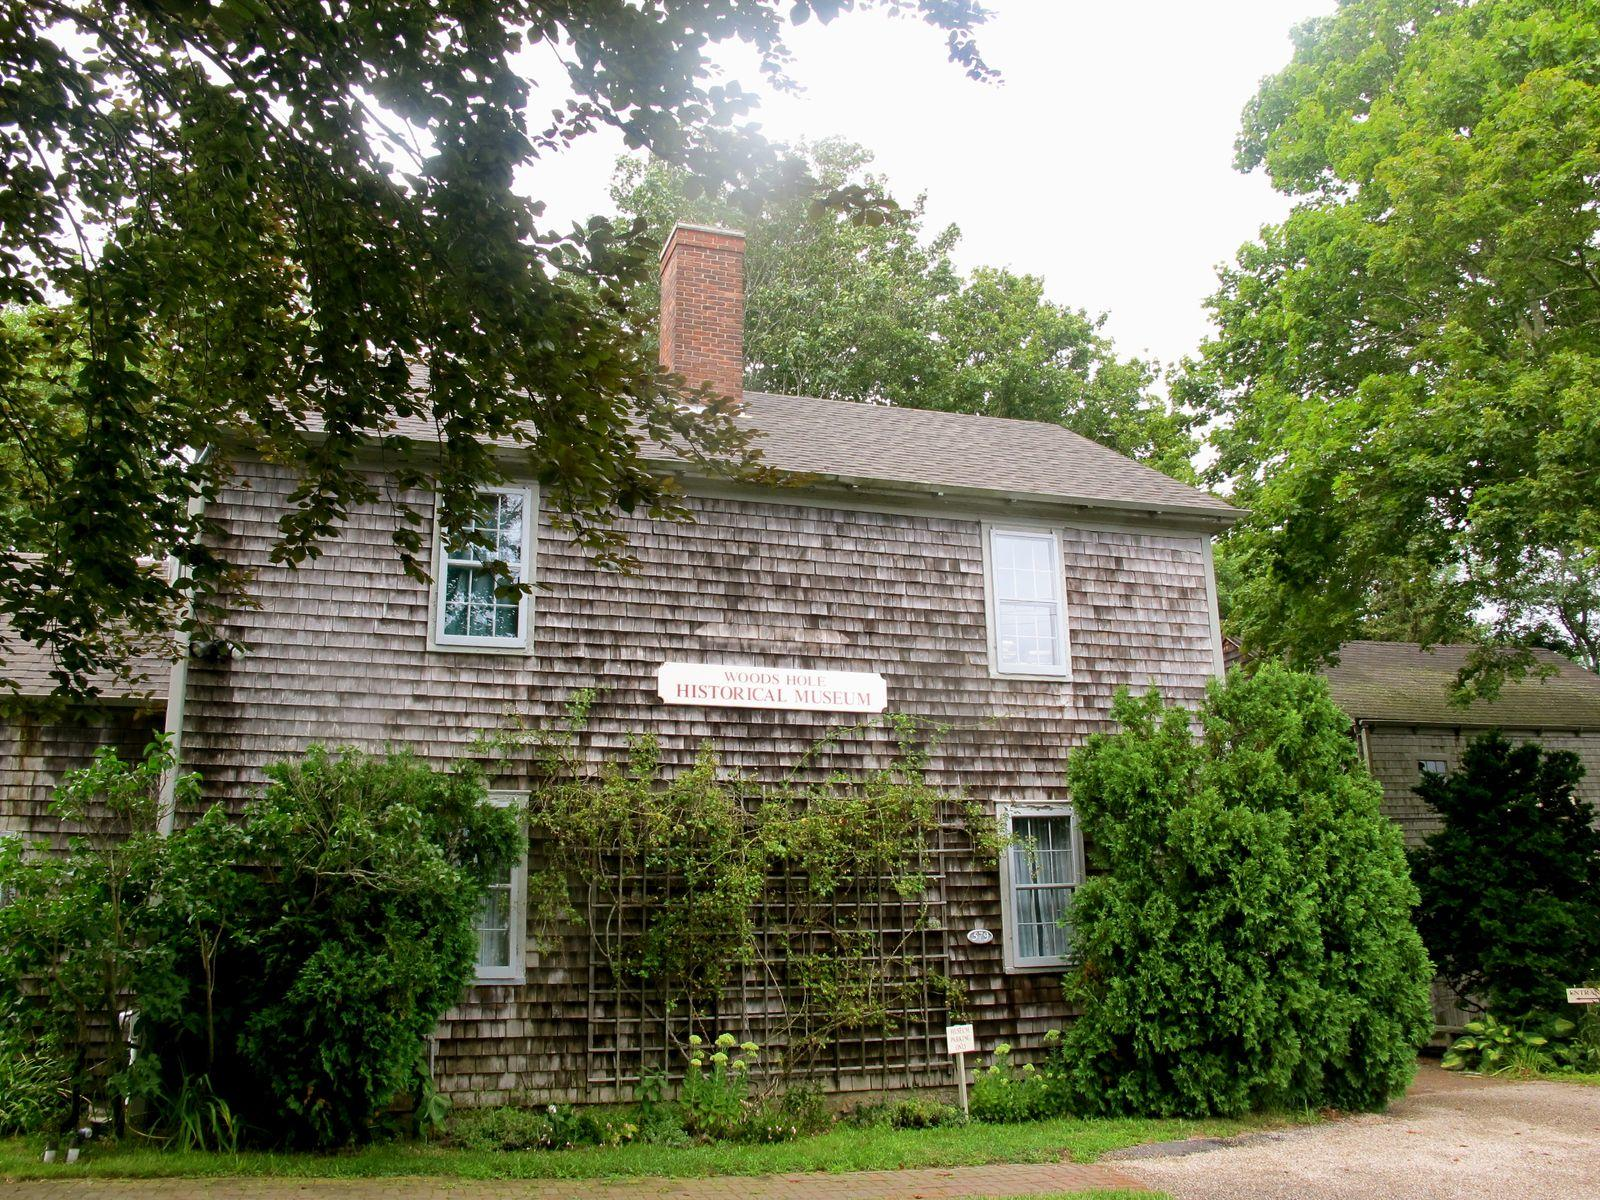 Woods Hole Historical Museum